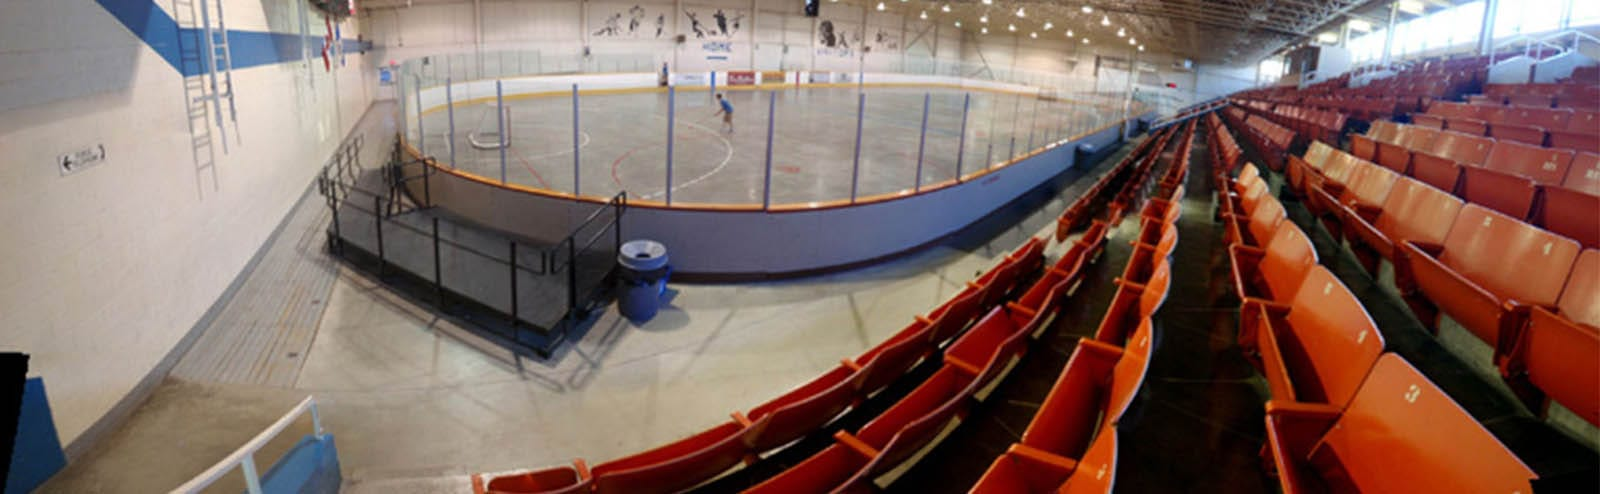 arena bleachers and ice pad